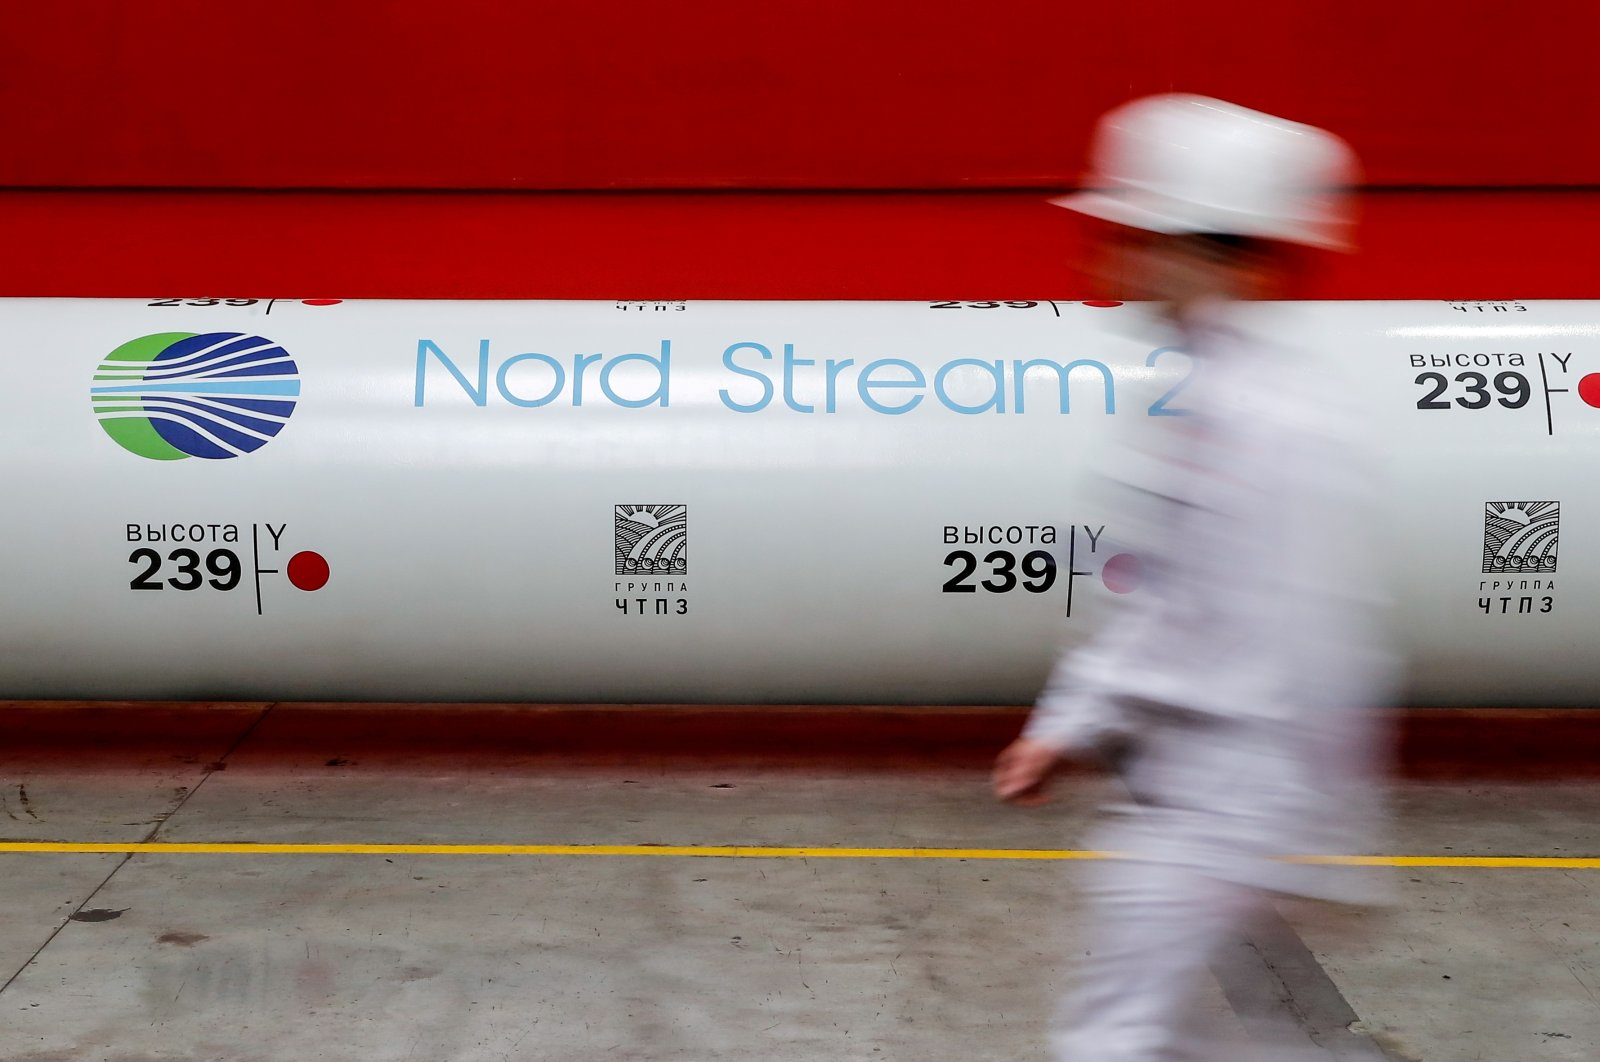 The logo of the Nord Stream 2 gas pipeline project is seen on a pipe at the Chelyabinsk pipe rolling plant in Chelyabinsk, Russia, Feb. 26, 2020.  (Reuters Photo)